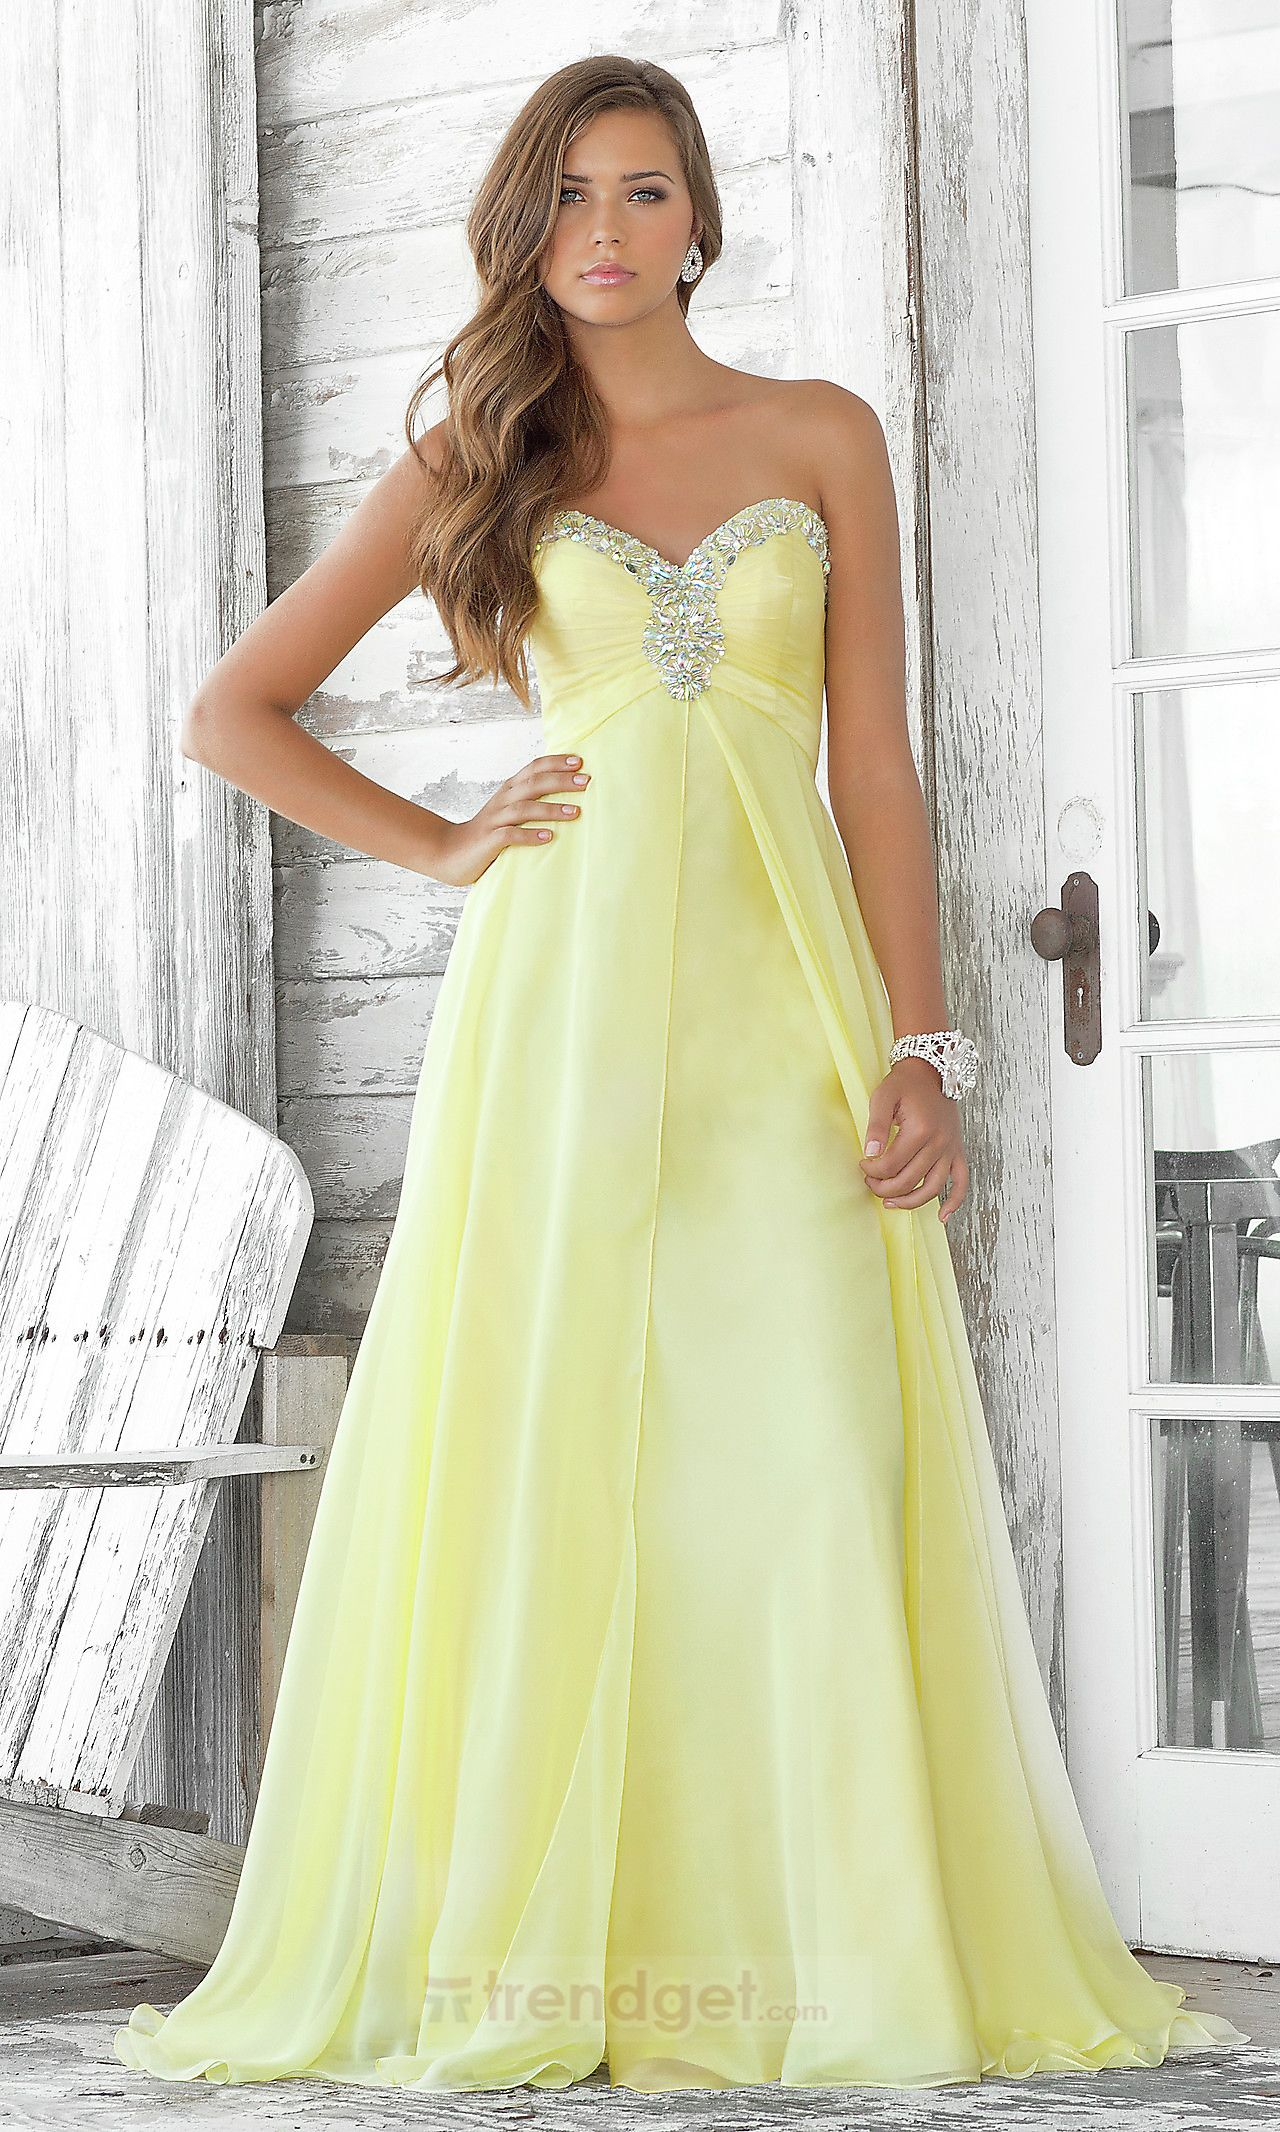 Simply A-line Sweetheart Floor-length Chiffon Colored Military Ball Dresses  - $120.99 - Trendget.com